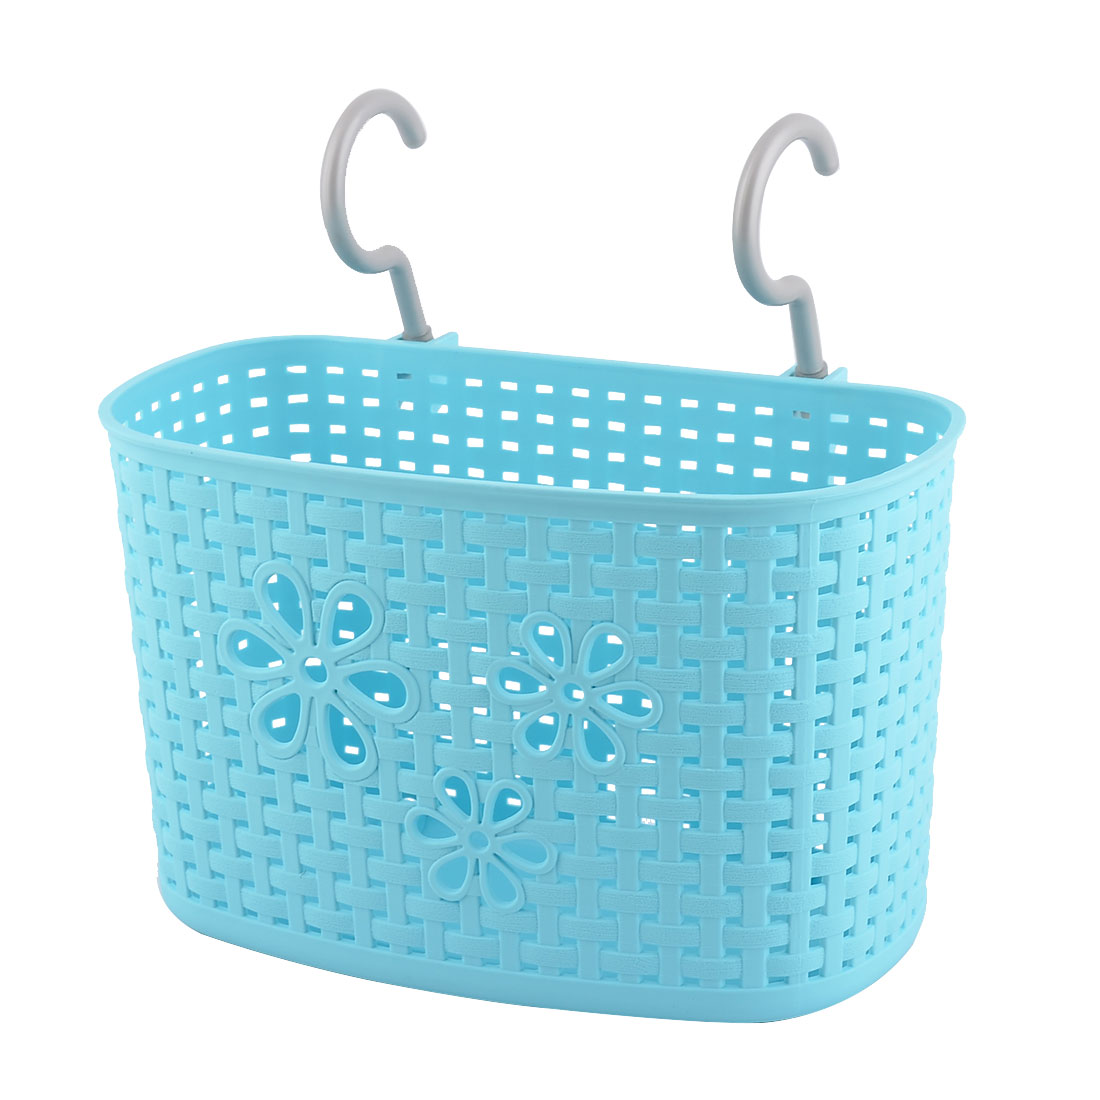 Household Kitchen Plastic Rectangular Hanging Storage Basket Container Blue